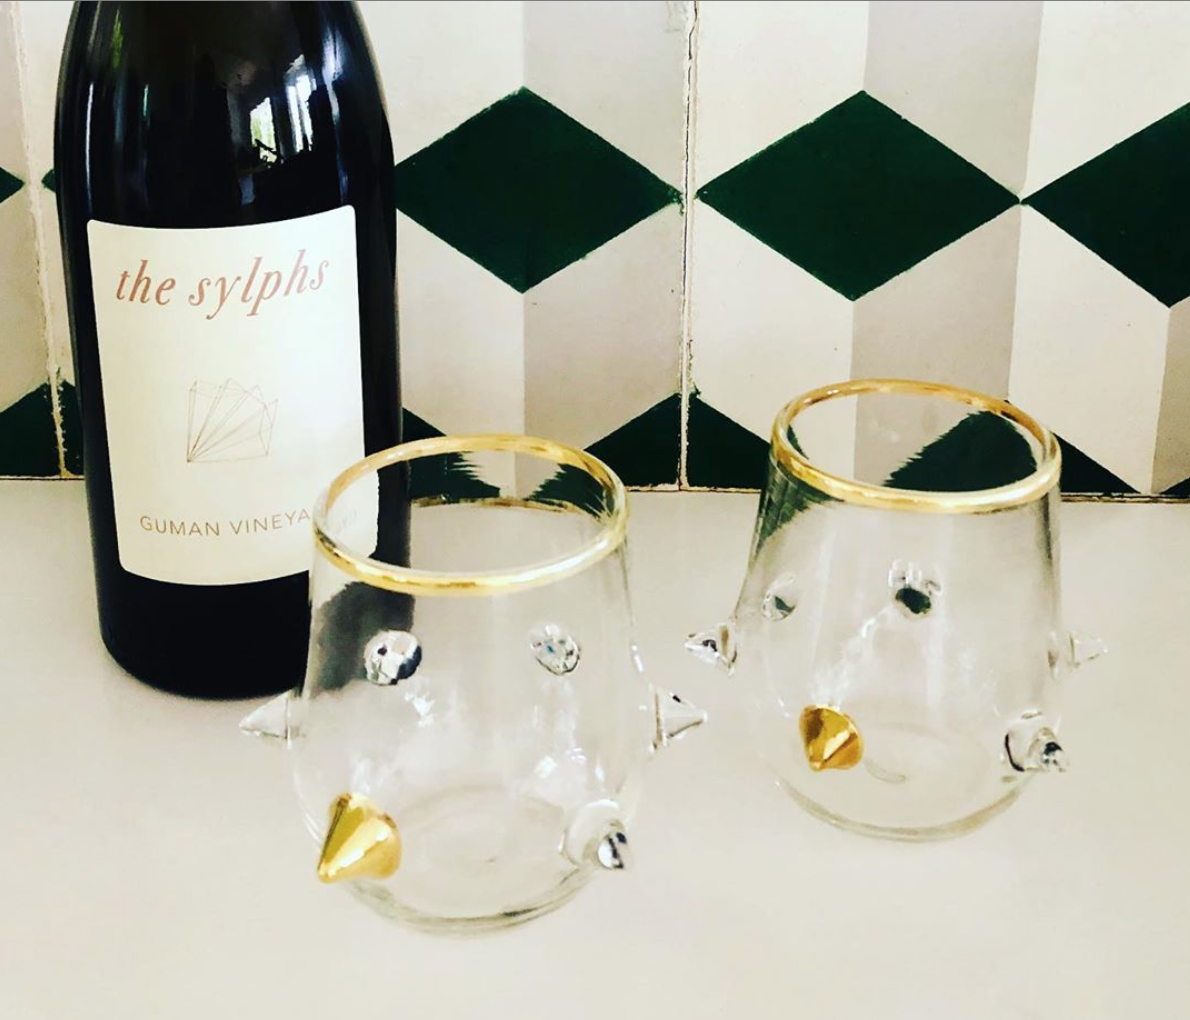 And a special shout out to  @amesingham —we loved your IG post:   Prettiest little edgy glasses I've ever seen!! @neptune_glassworks thank you so much @snyderdiamond and @gc_collaborative and a big congratulations on such a successful 70 years!!! To many more! ?